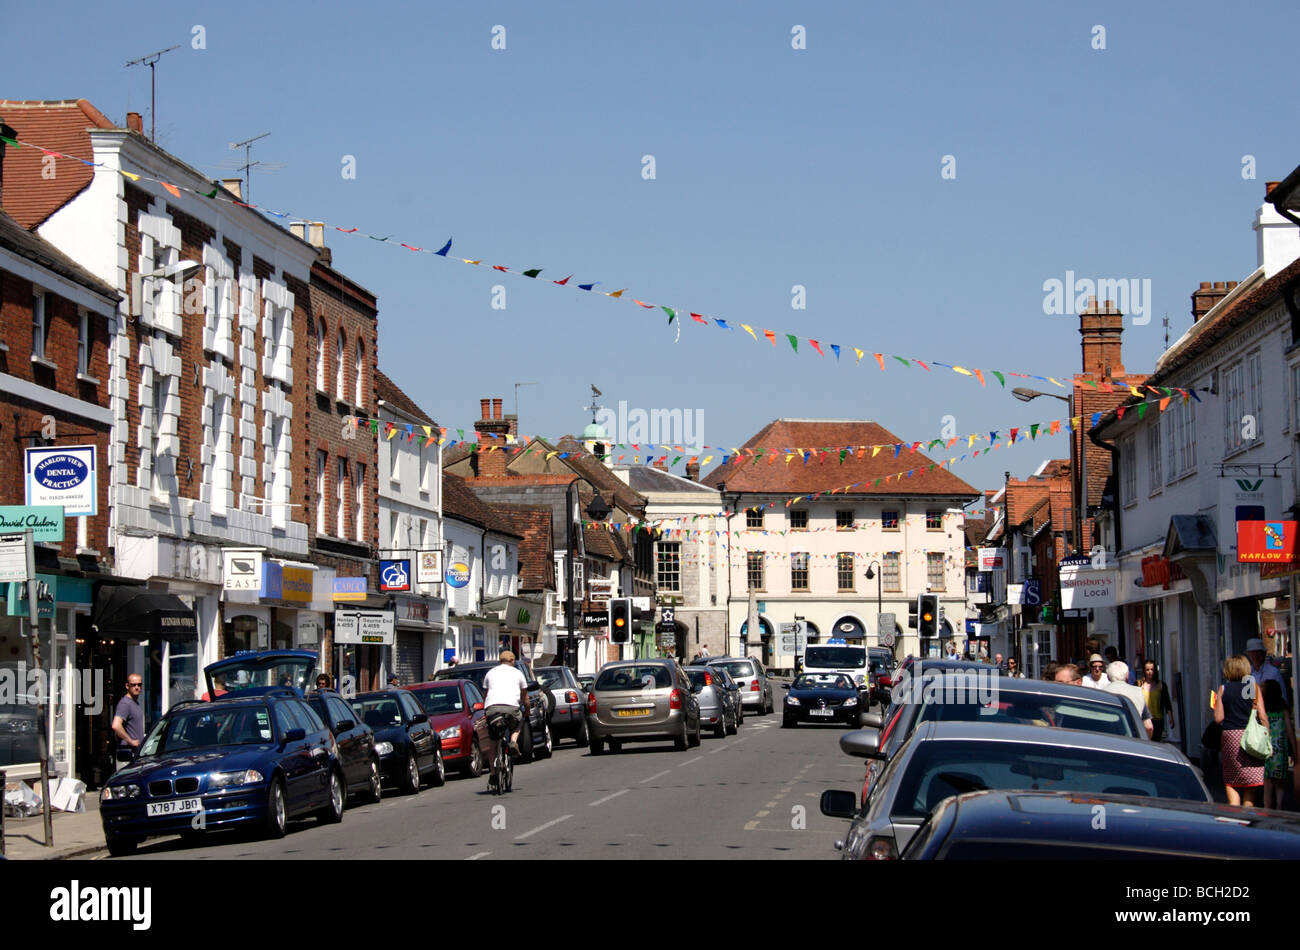 High Street Marlow Buckinghamshire May 2009 Stock Photo